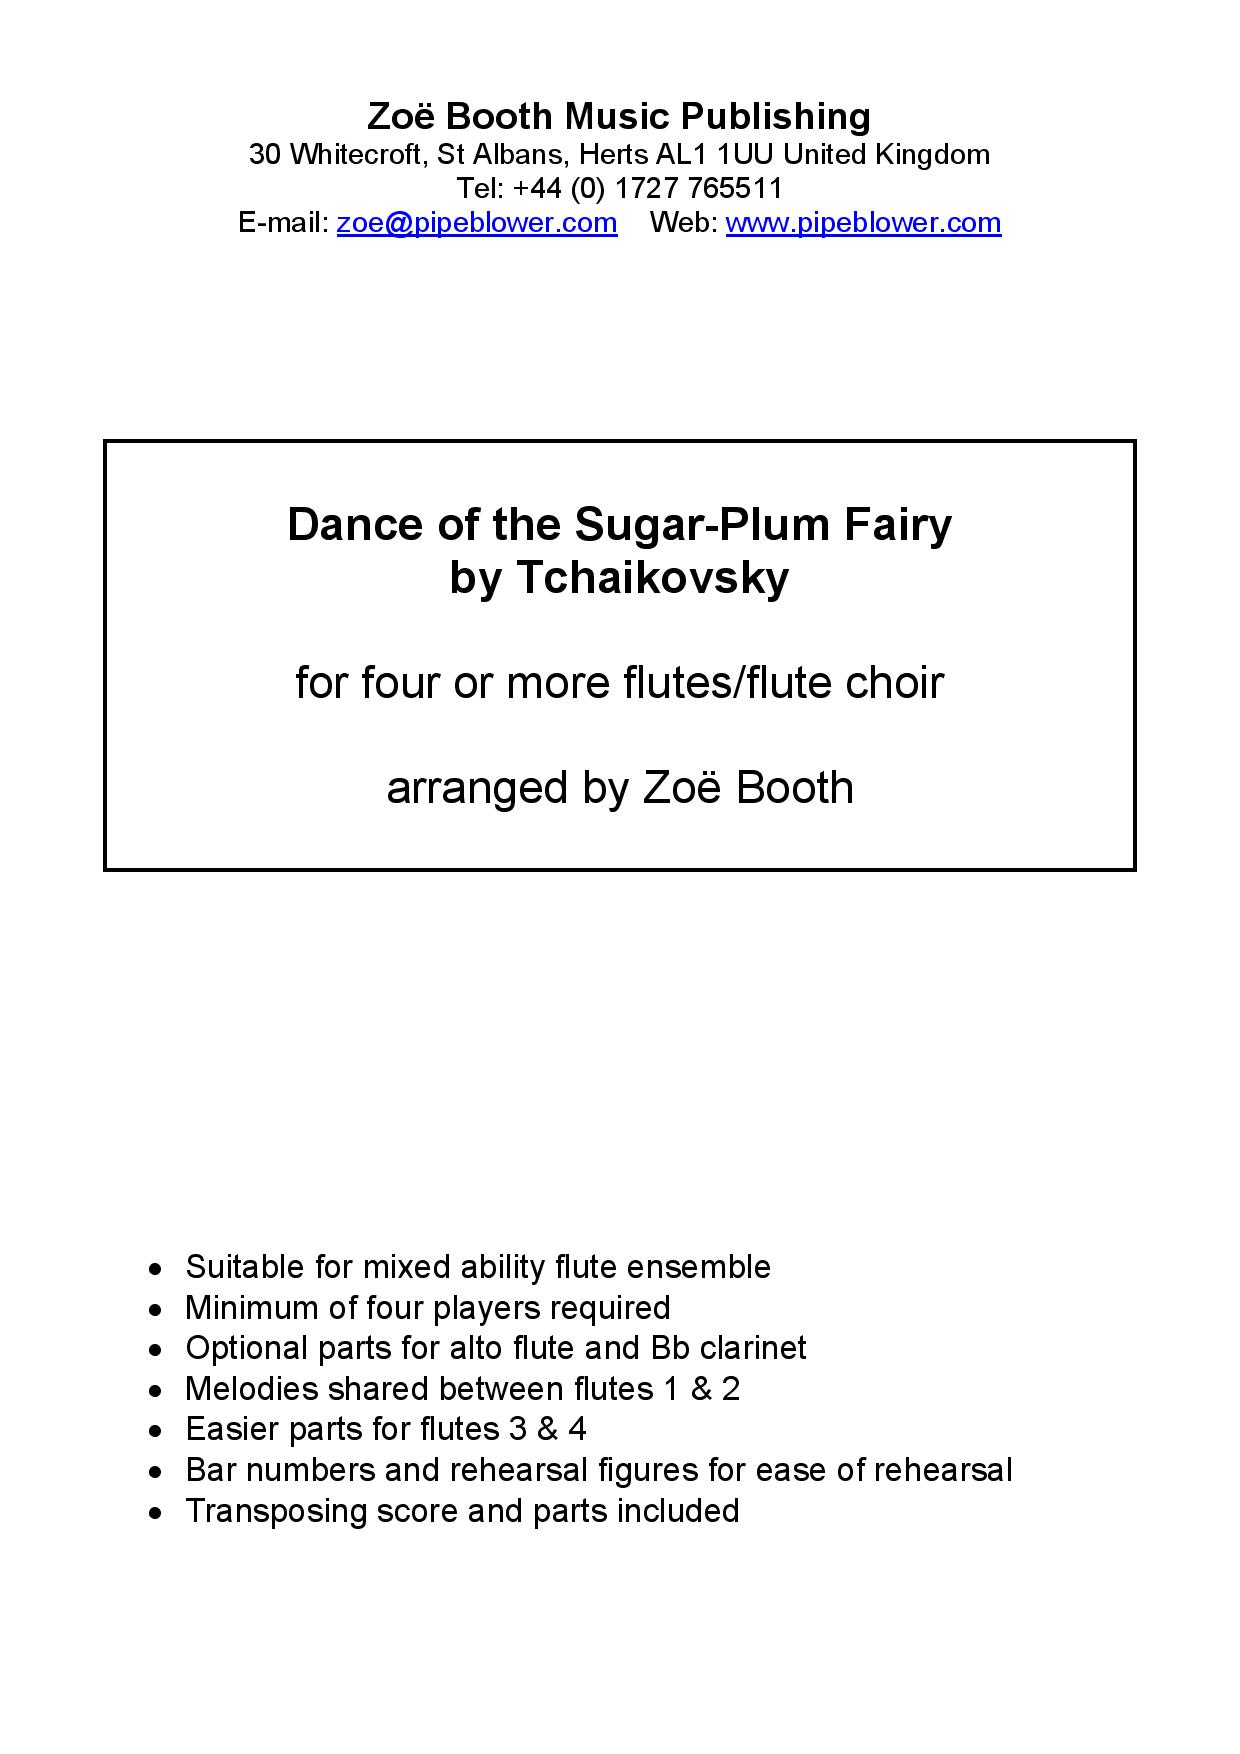 Dance of the Sugar-Plum Fairy by Tchaikovsky, arranged by Zoë Booth for four or more flutes...